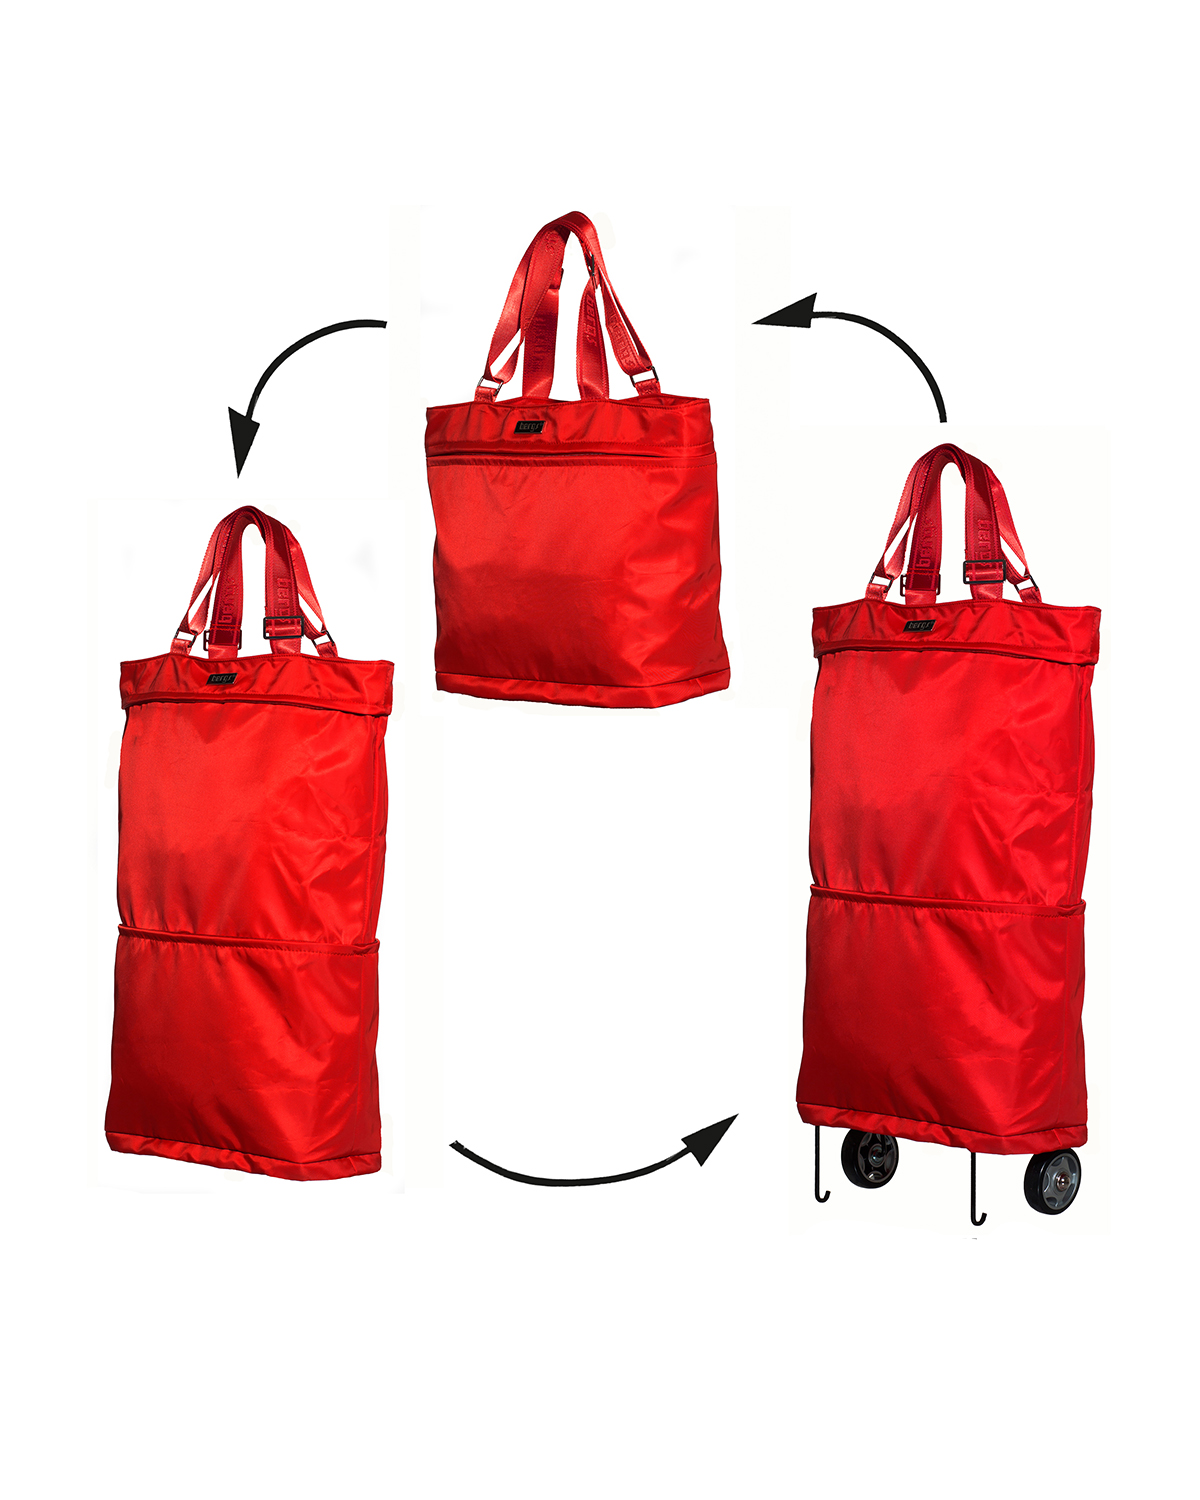 Bergs3in1 Multifunctional Women's Bag Polyester Red